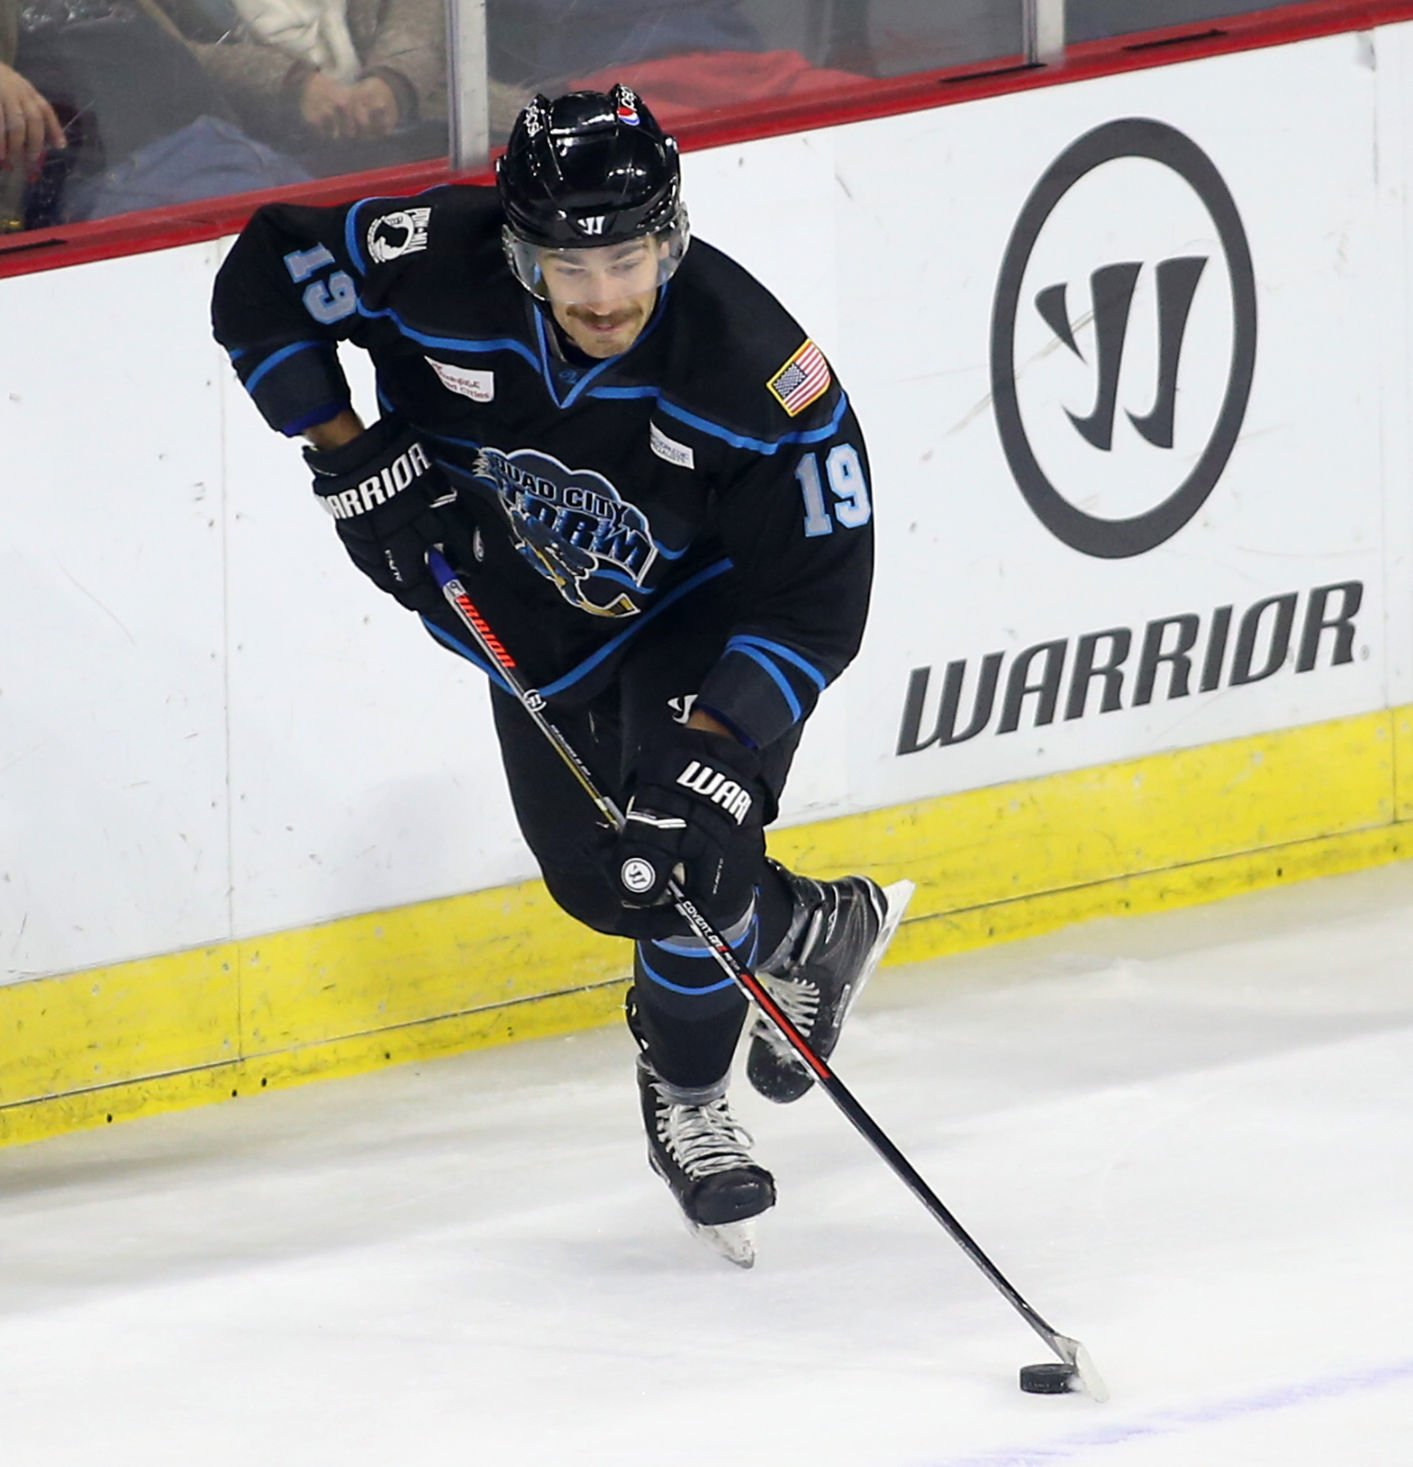 SPHL: After Scoring First Goal In Storm History, McKeown Continuing To Produce